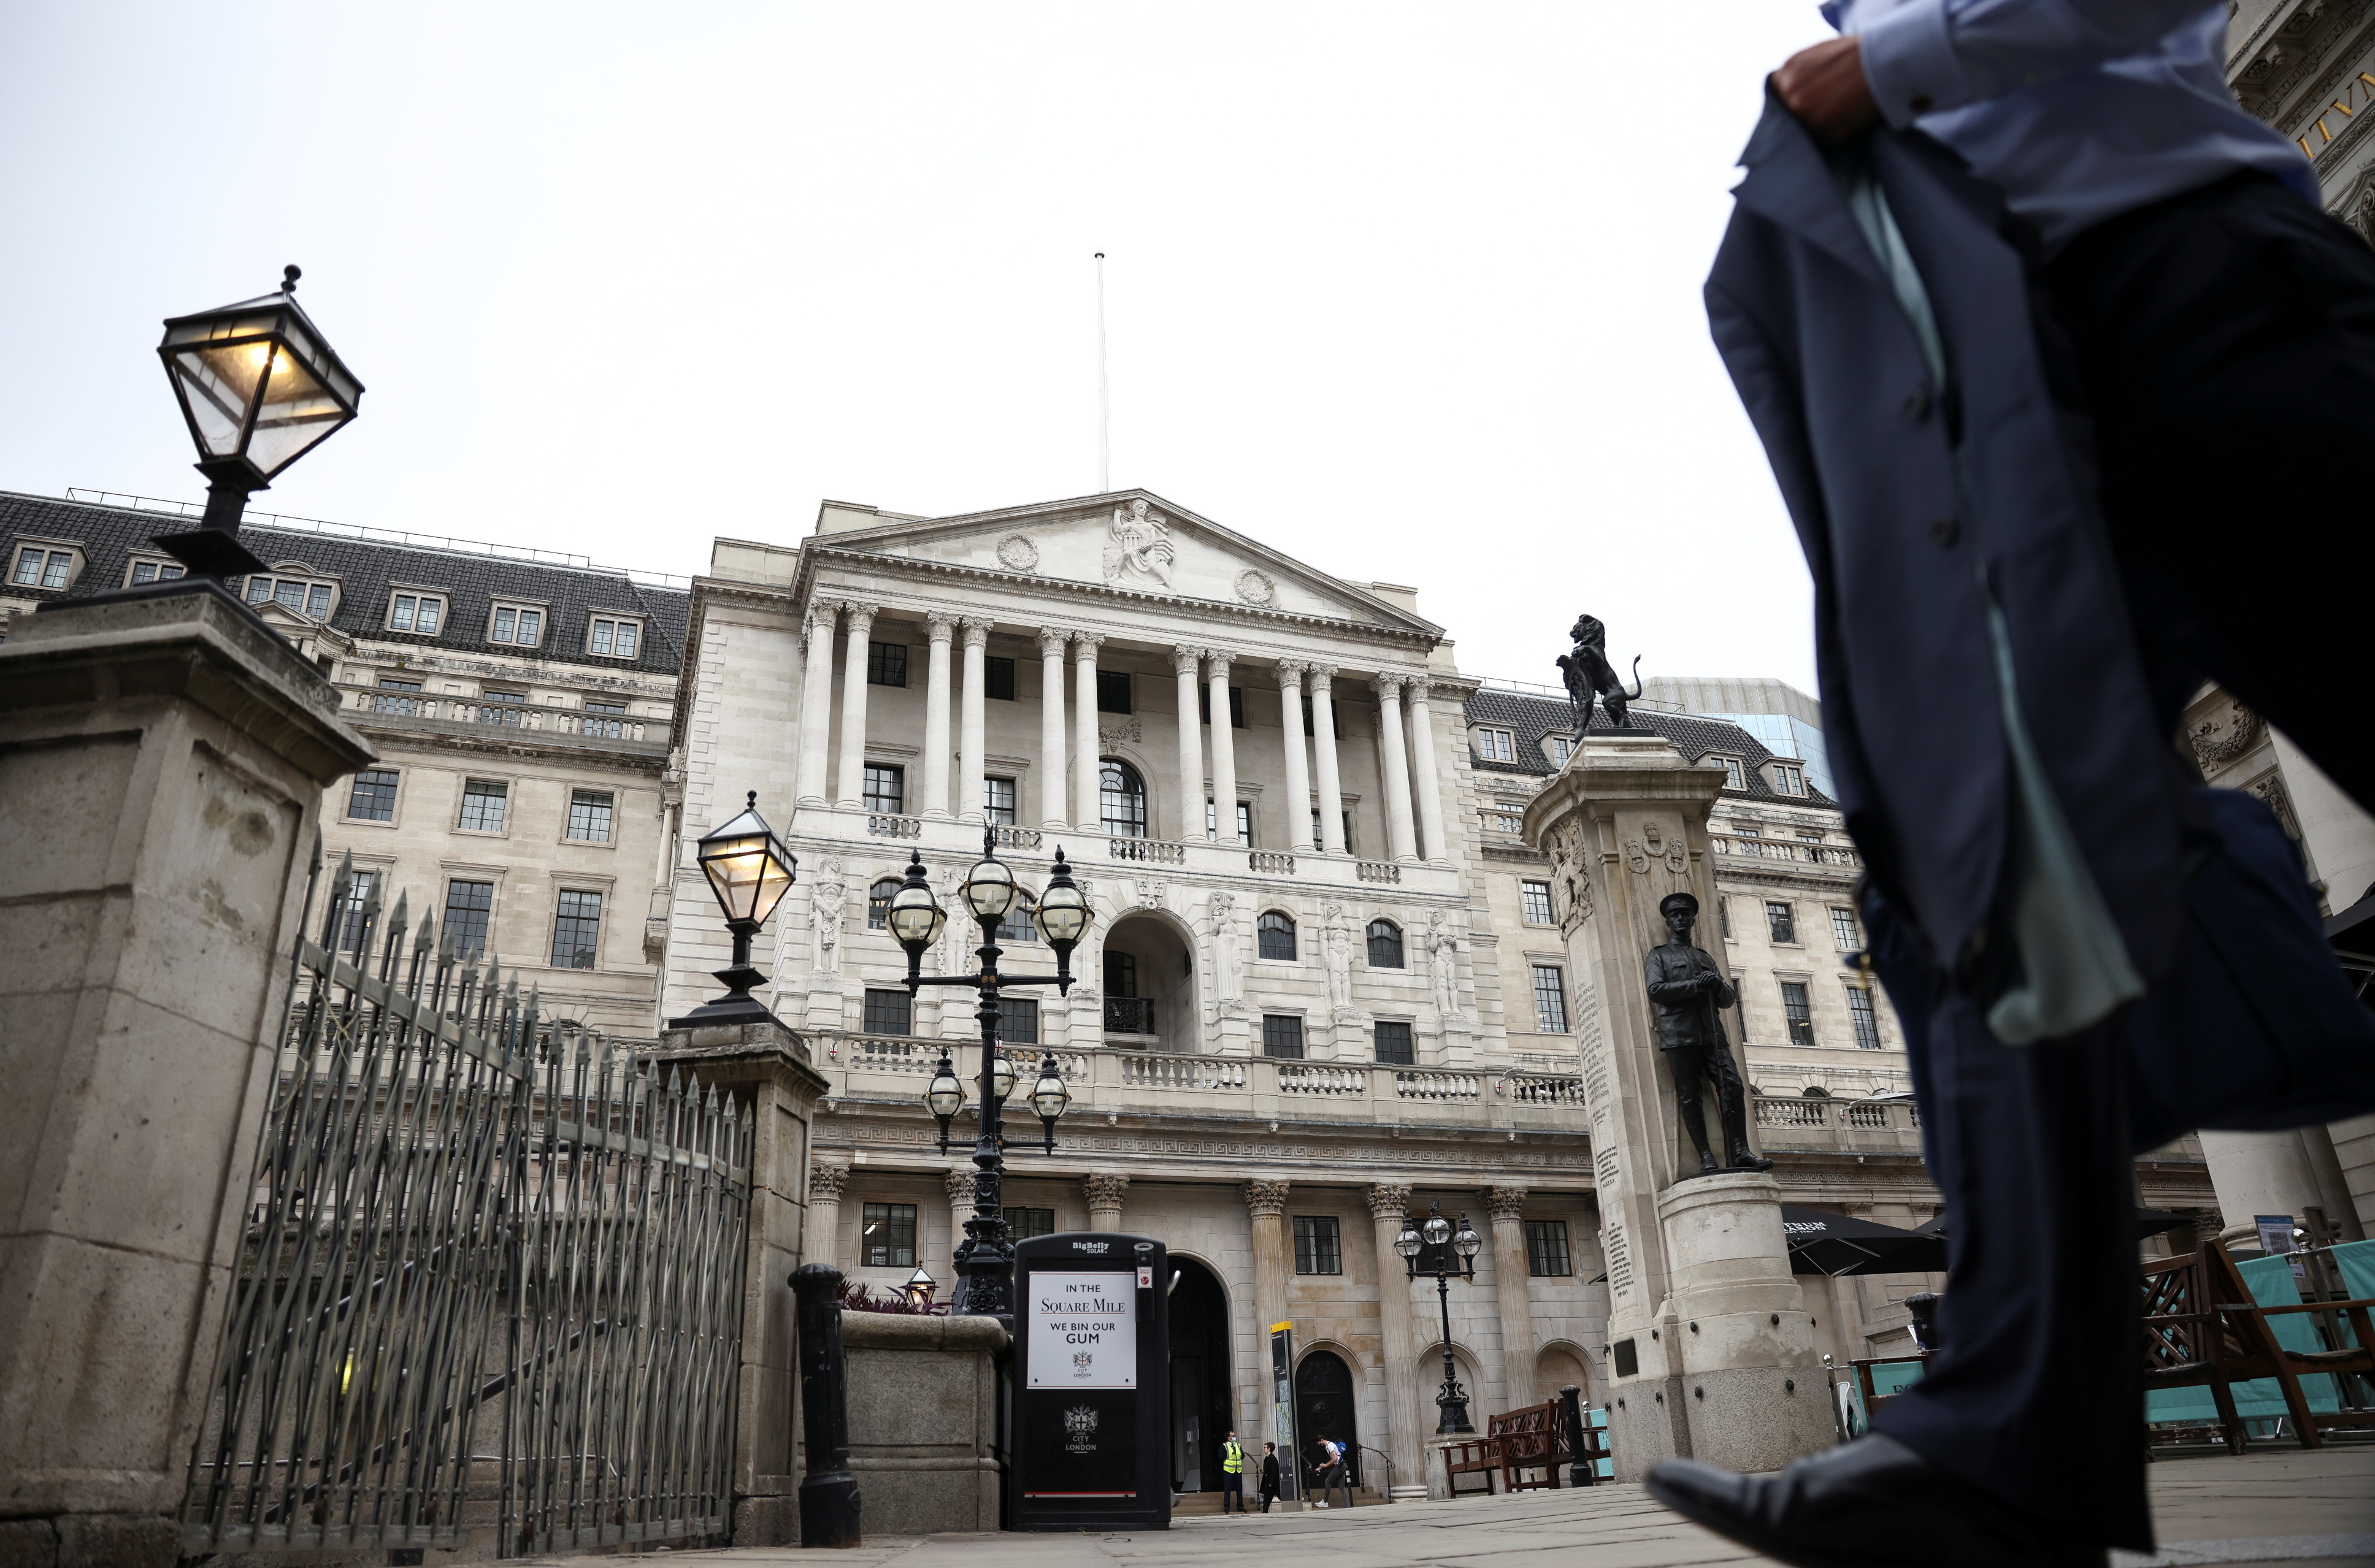 A person walks past the Bank of England in the City of London financial district, in London, Britain, June 11, 2021. REUTERS/Henry Nicholls